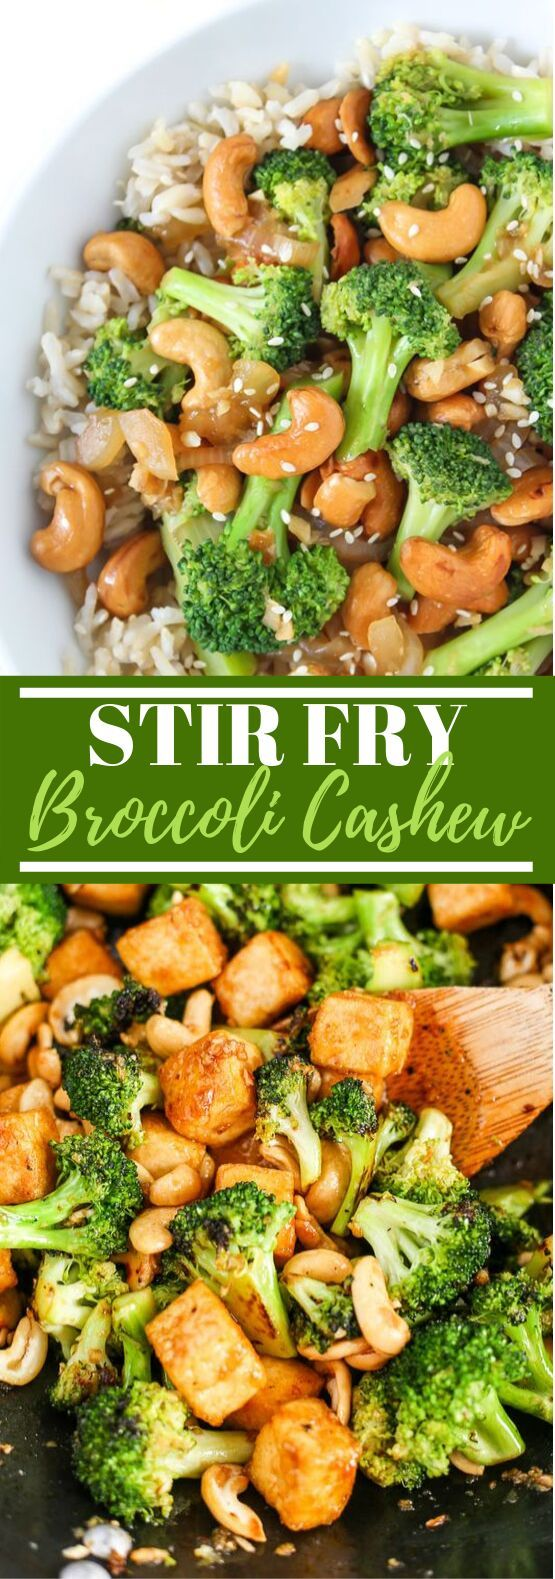 Broccoli Cashew Stir-Fry #vegetarian #vegan